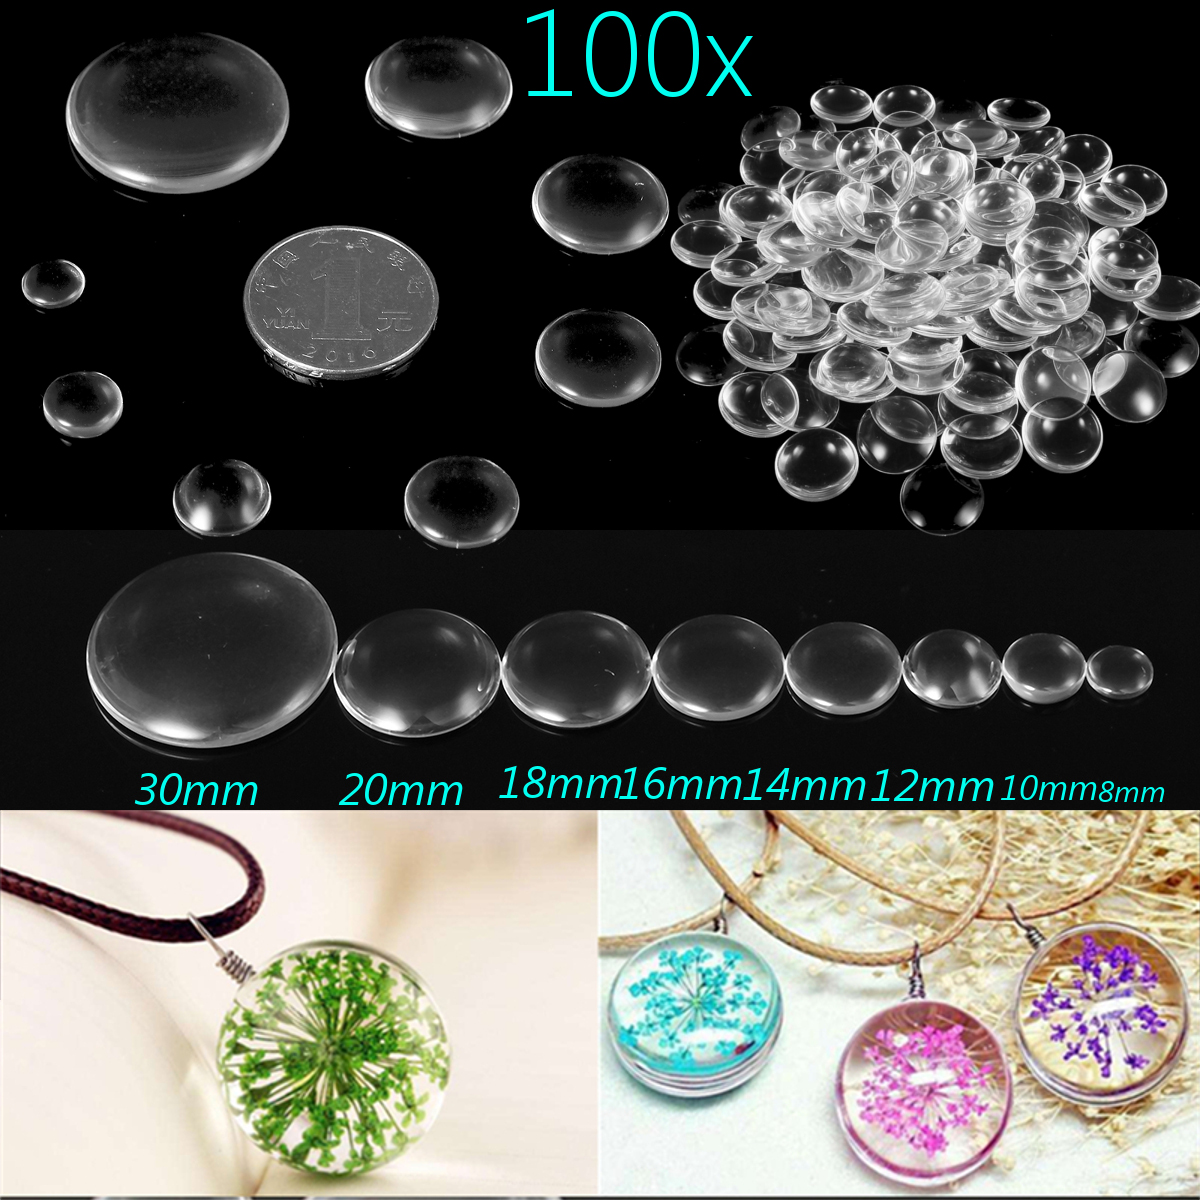 100Pcs Round Clear Glass Dome Cabochon Cameo Flat Back Crystal Magnify Base Cover DIY